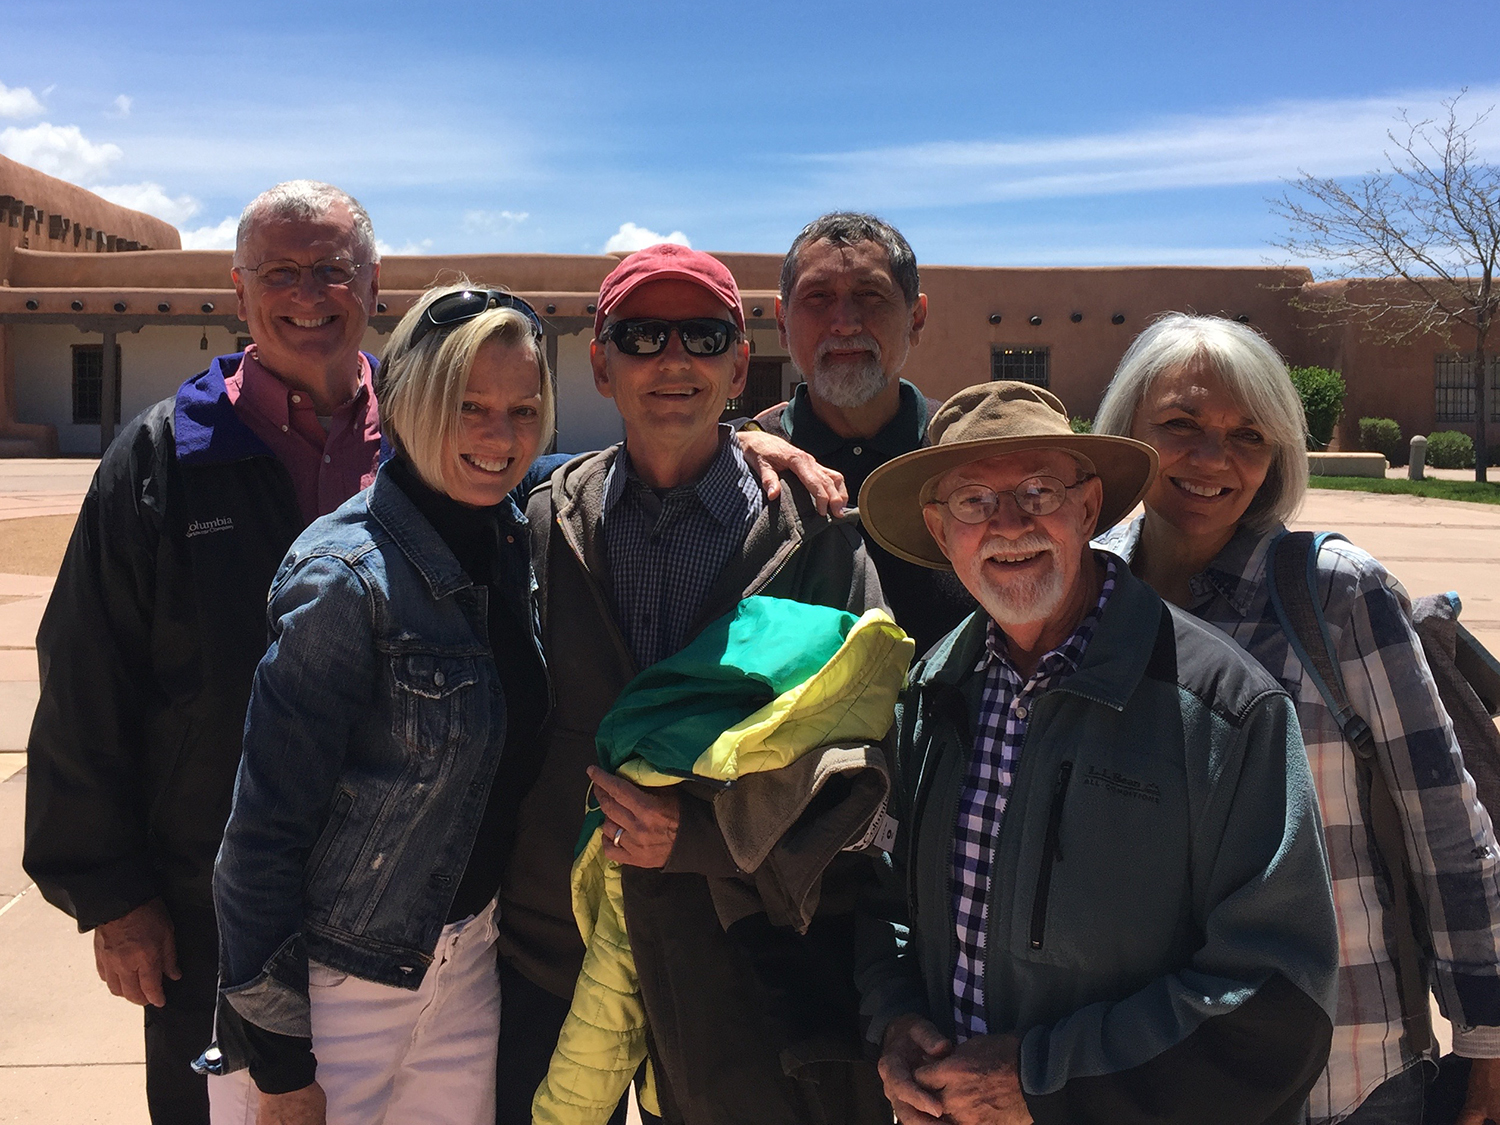 We met in Santa Fe. John & Tom A. in the back, from CO; Tom & I, from CA; and Larry & Barbara, from FL.